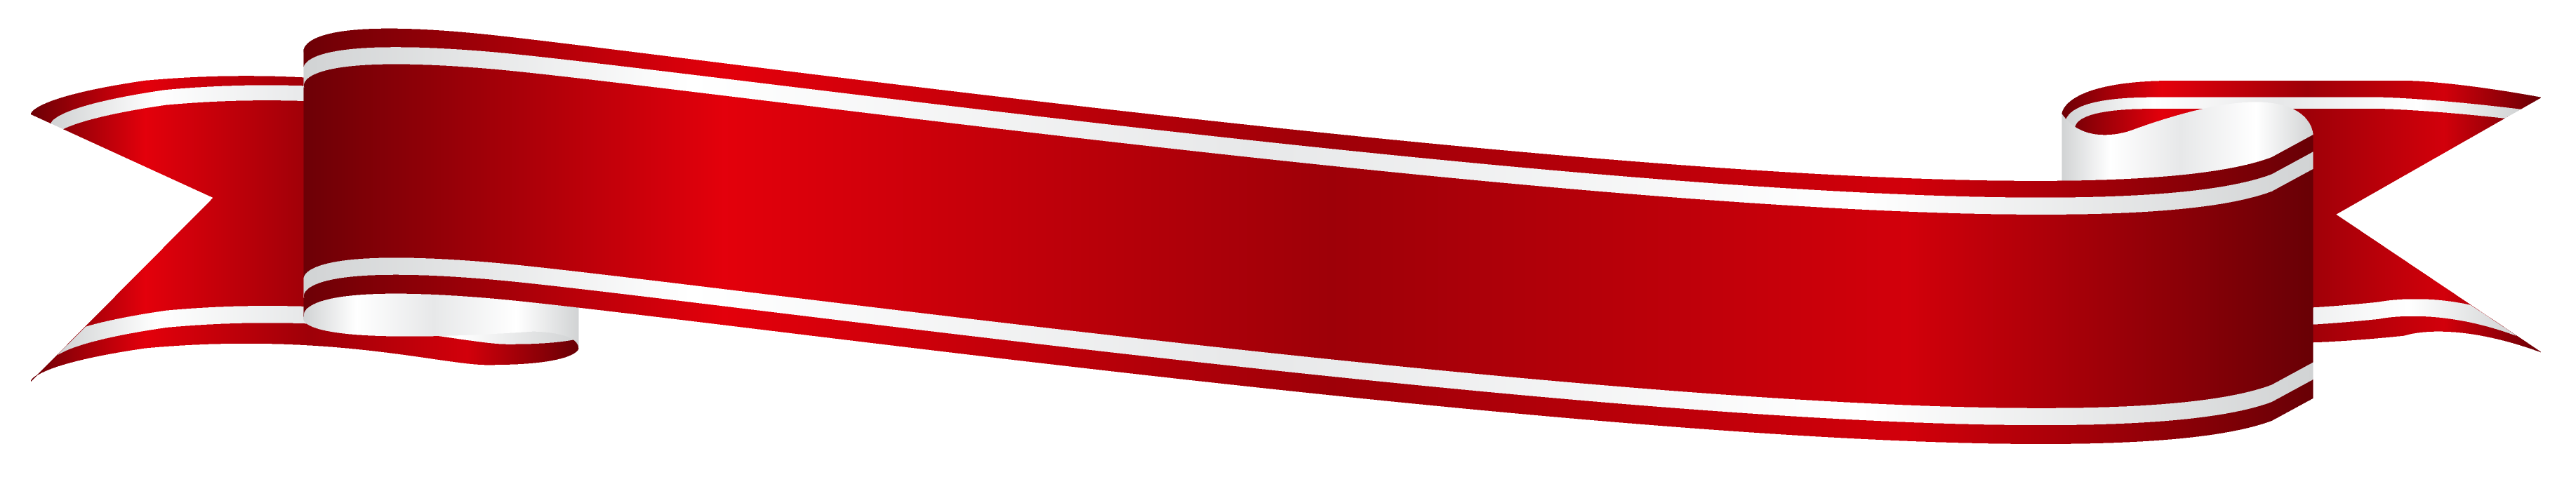 Theveliger free download clip. Red ribbon banner png image royalty free library